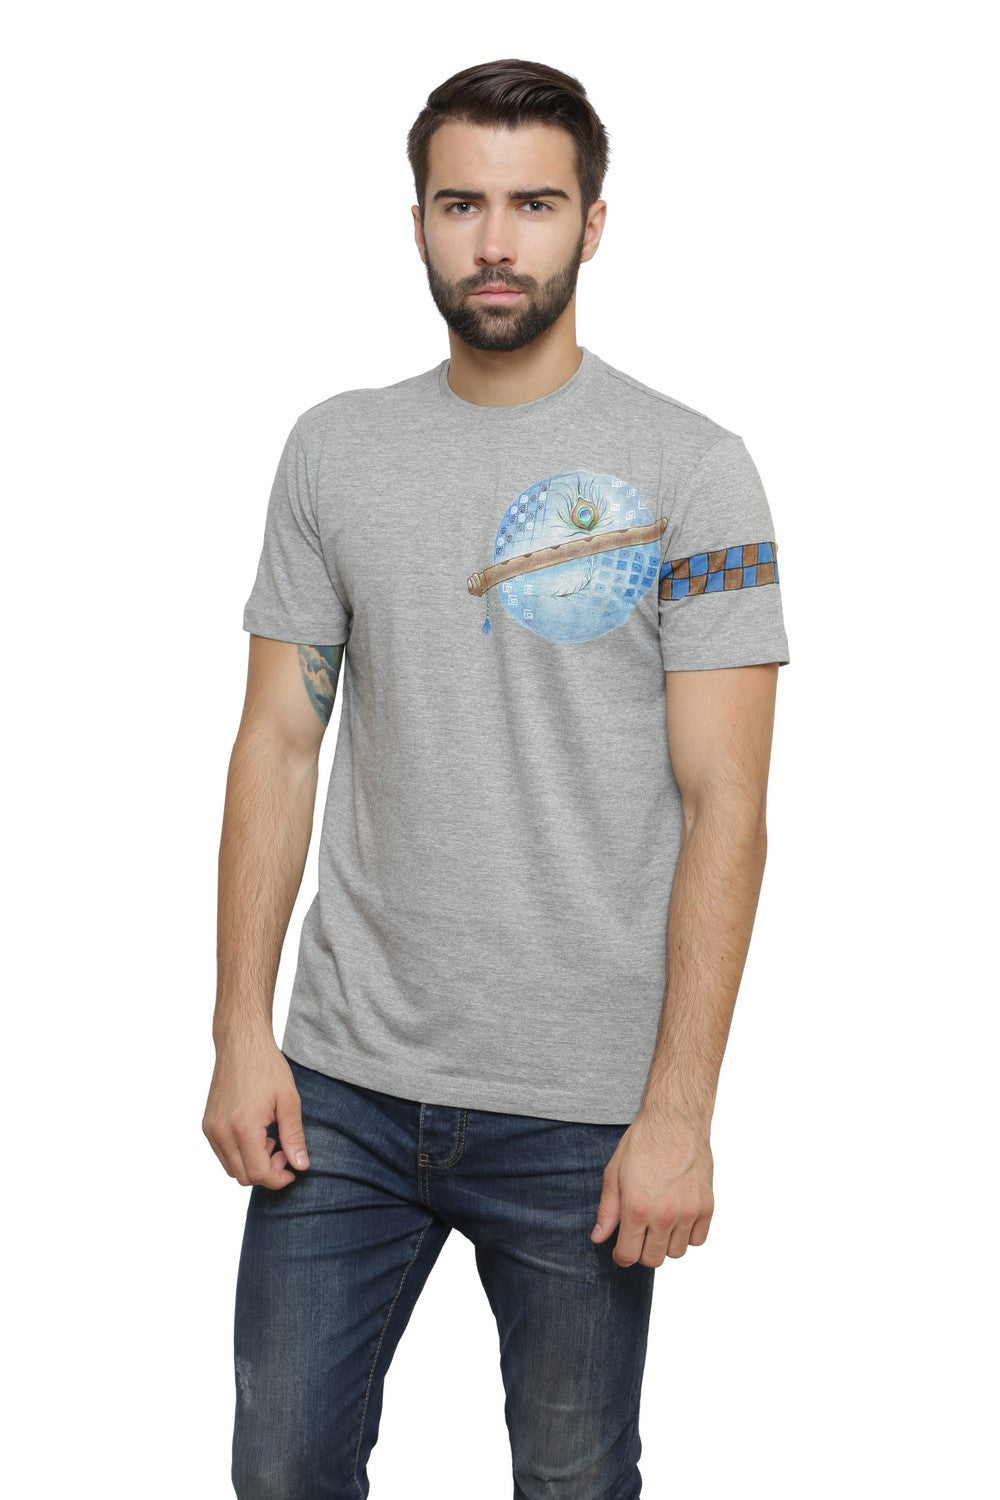 Hand-painted Krishna Elements Grey T-shirt - Rang Rage  - 1